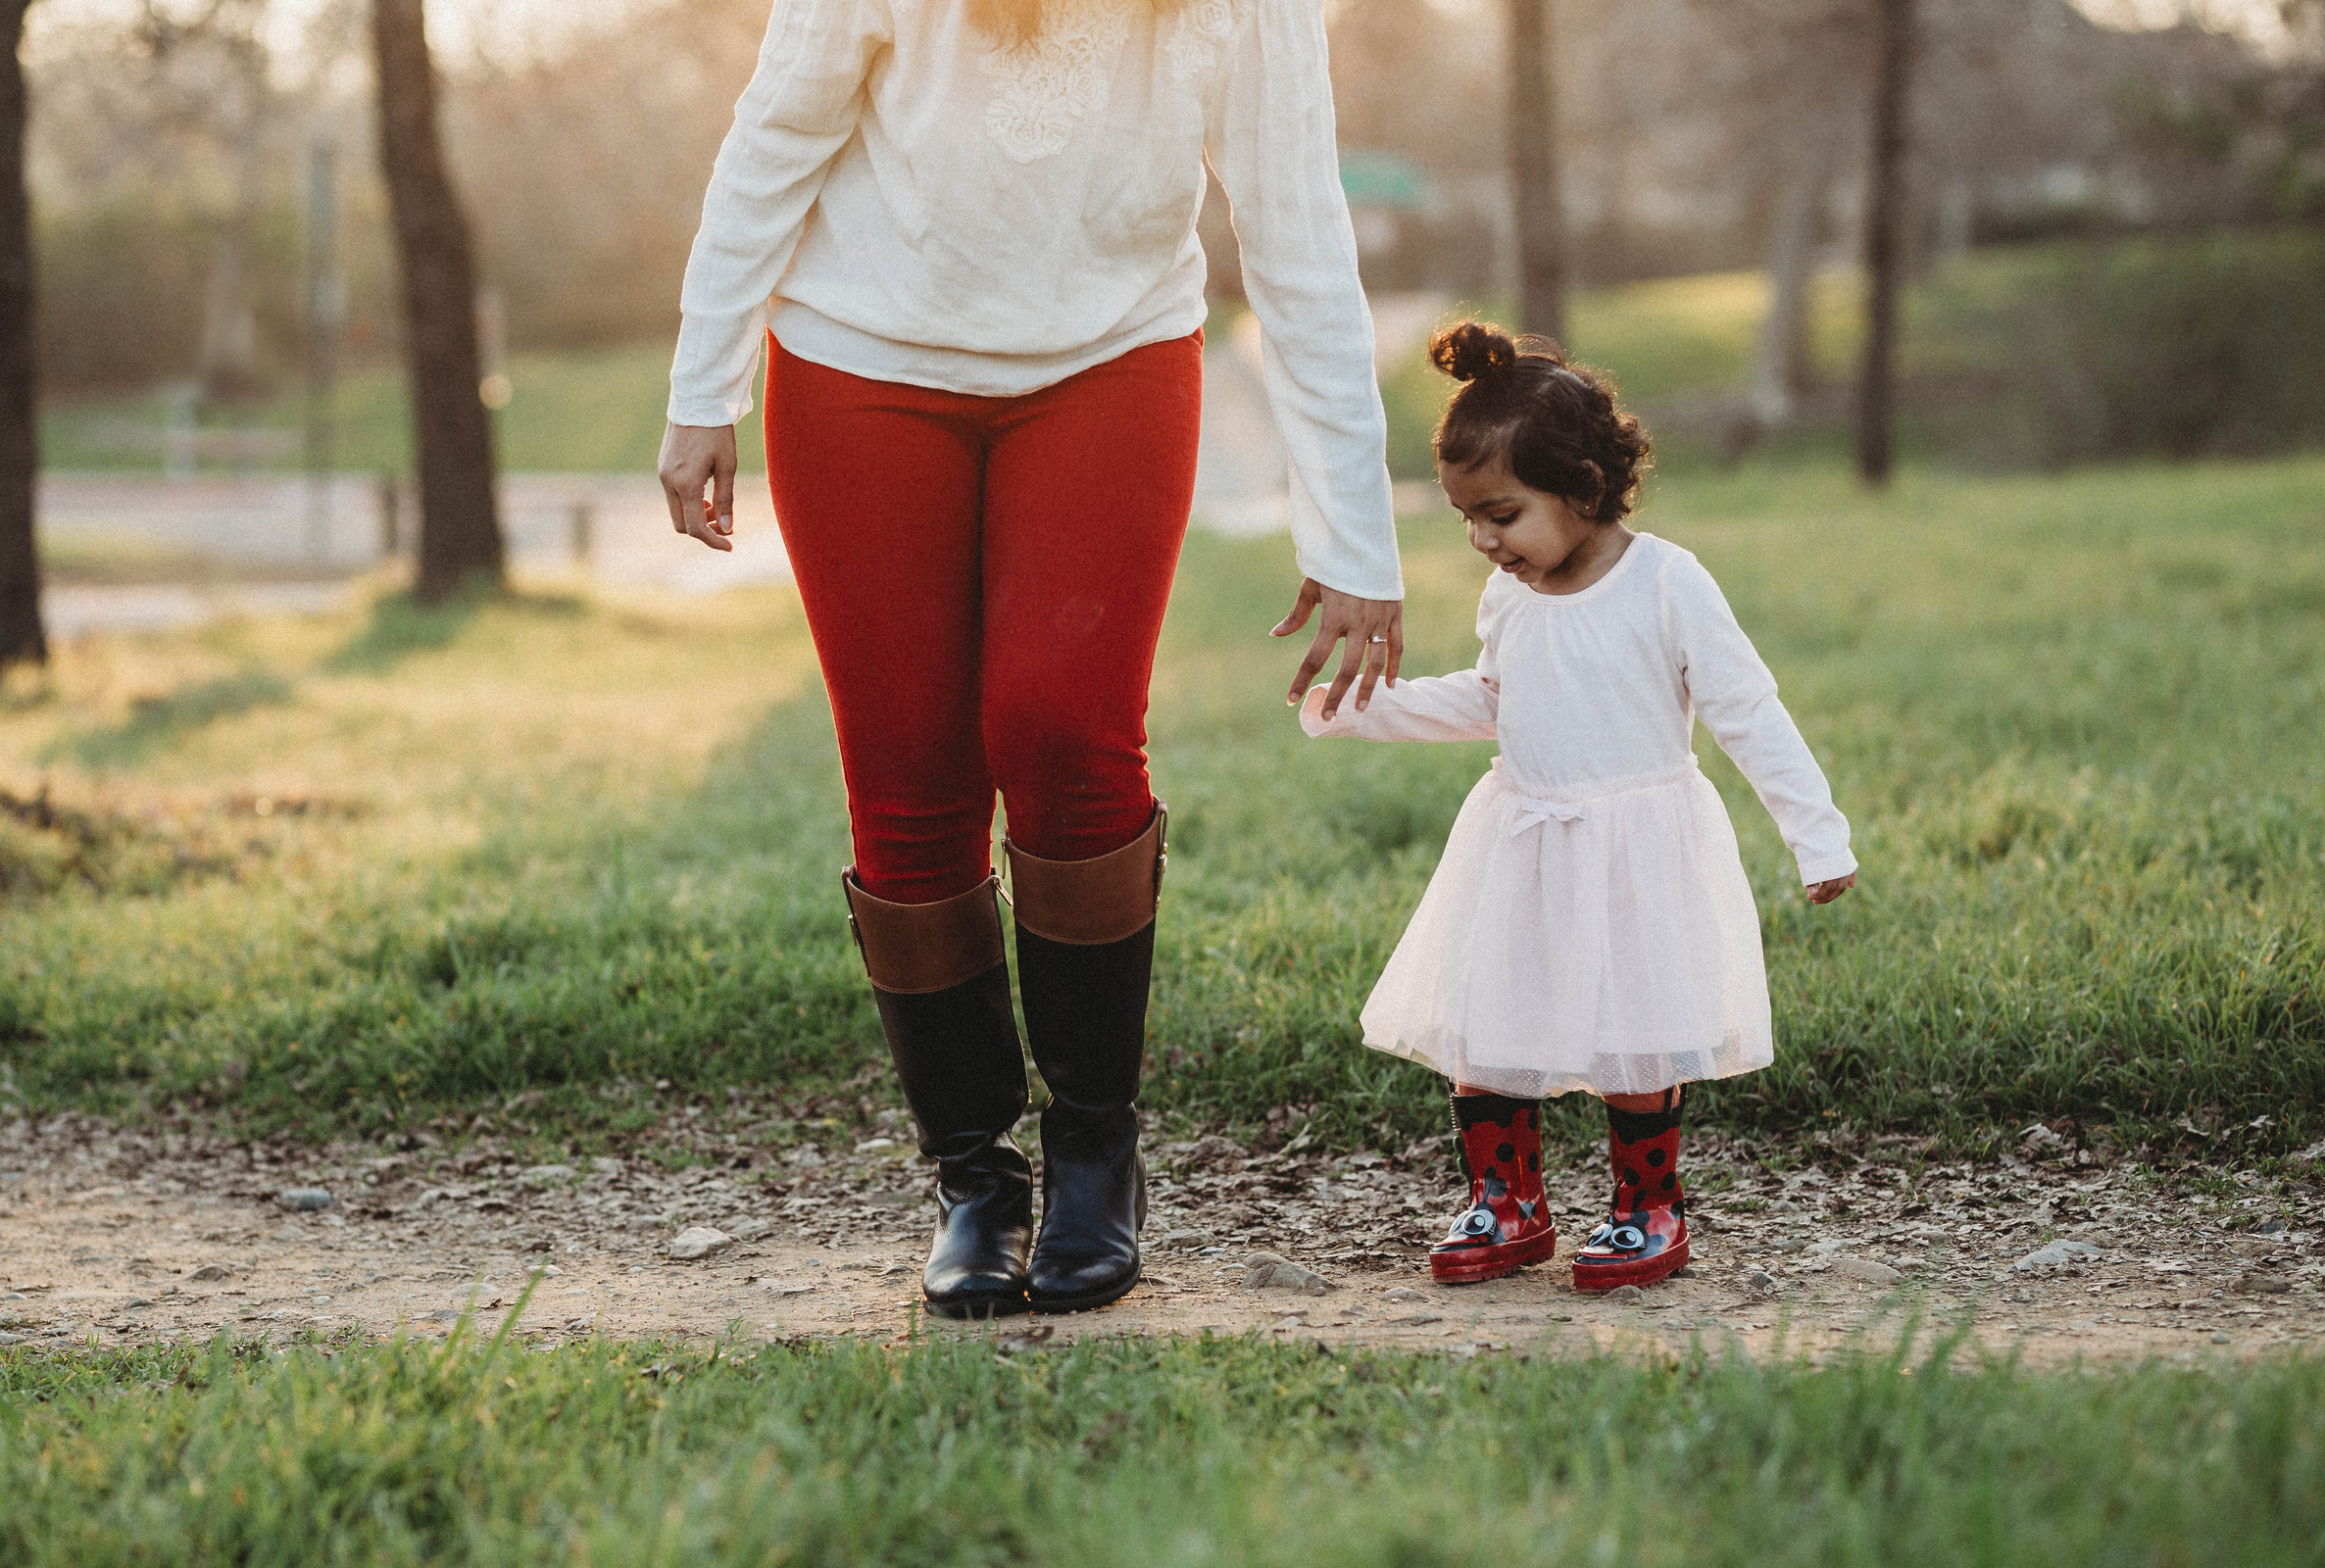 toddler girl in dress and boots walking outside with mother in red pants self portrait jyo bhamidipati